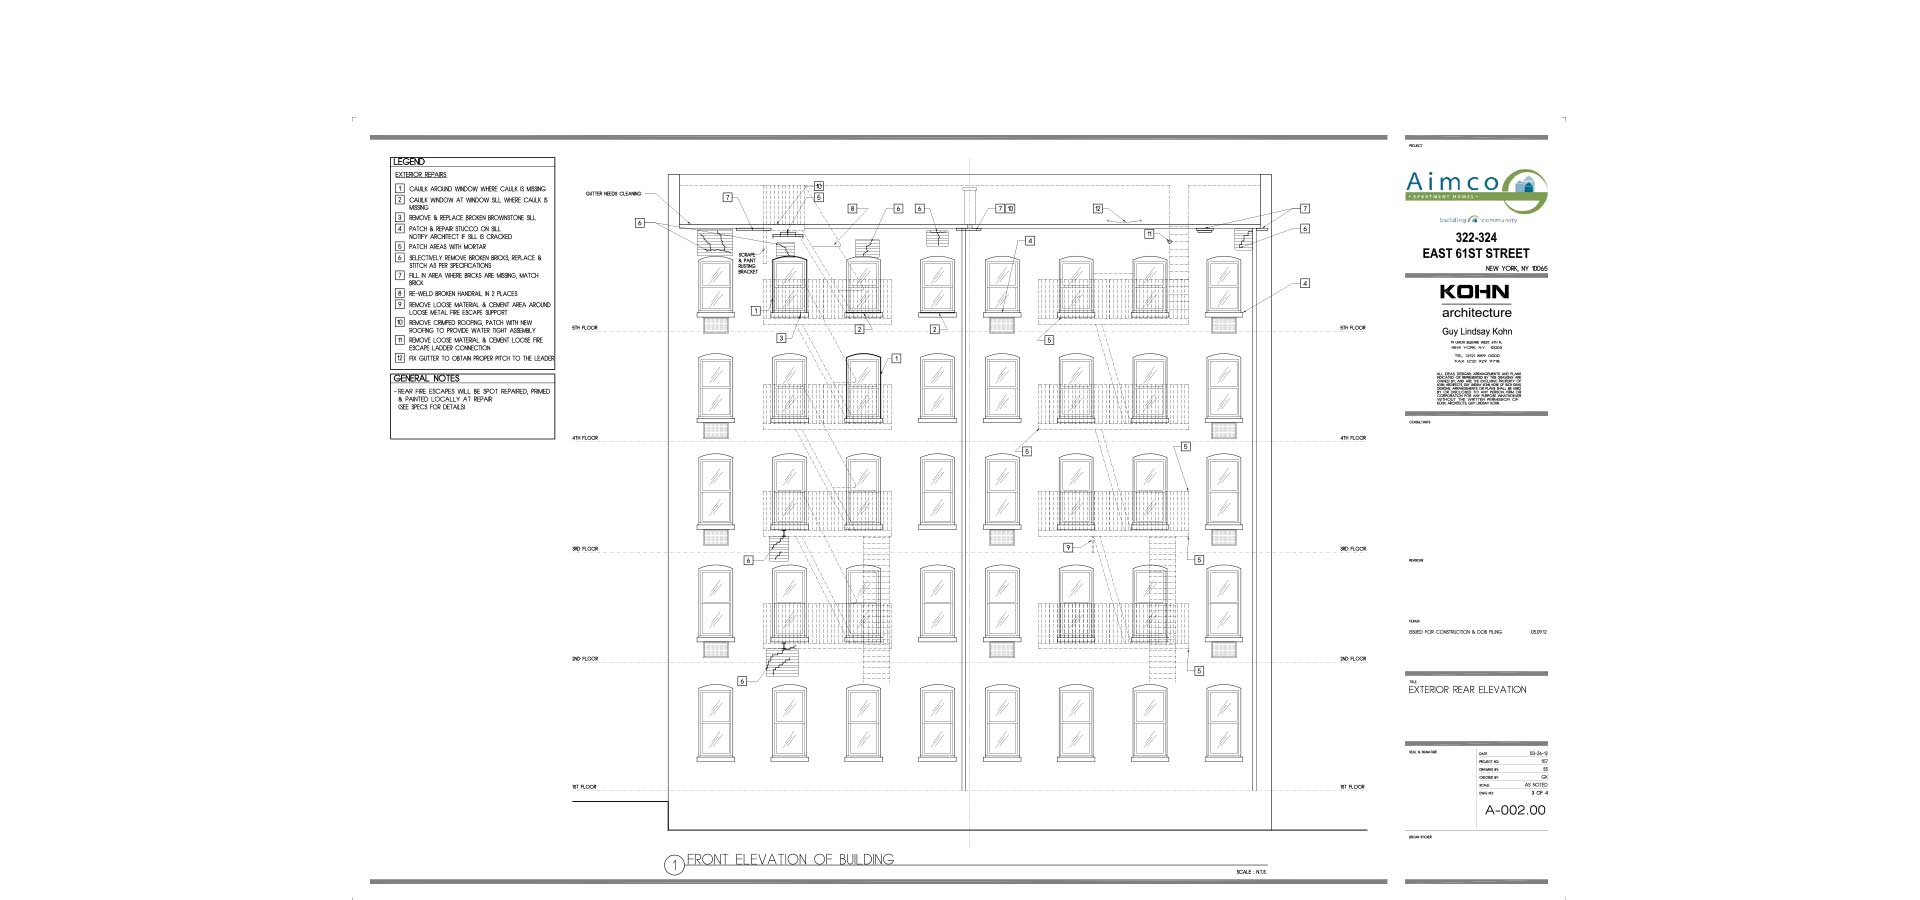 nyc department of buildings architectural blueprint for commercial building architecture and design in nyc by kohn architecture nyc